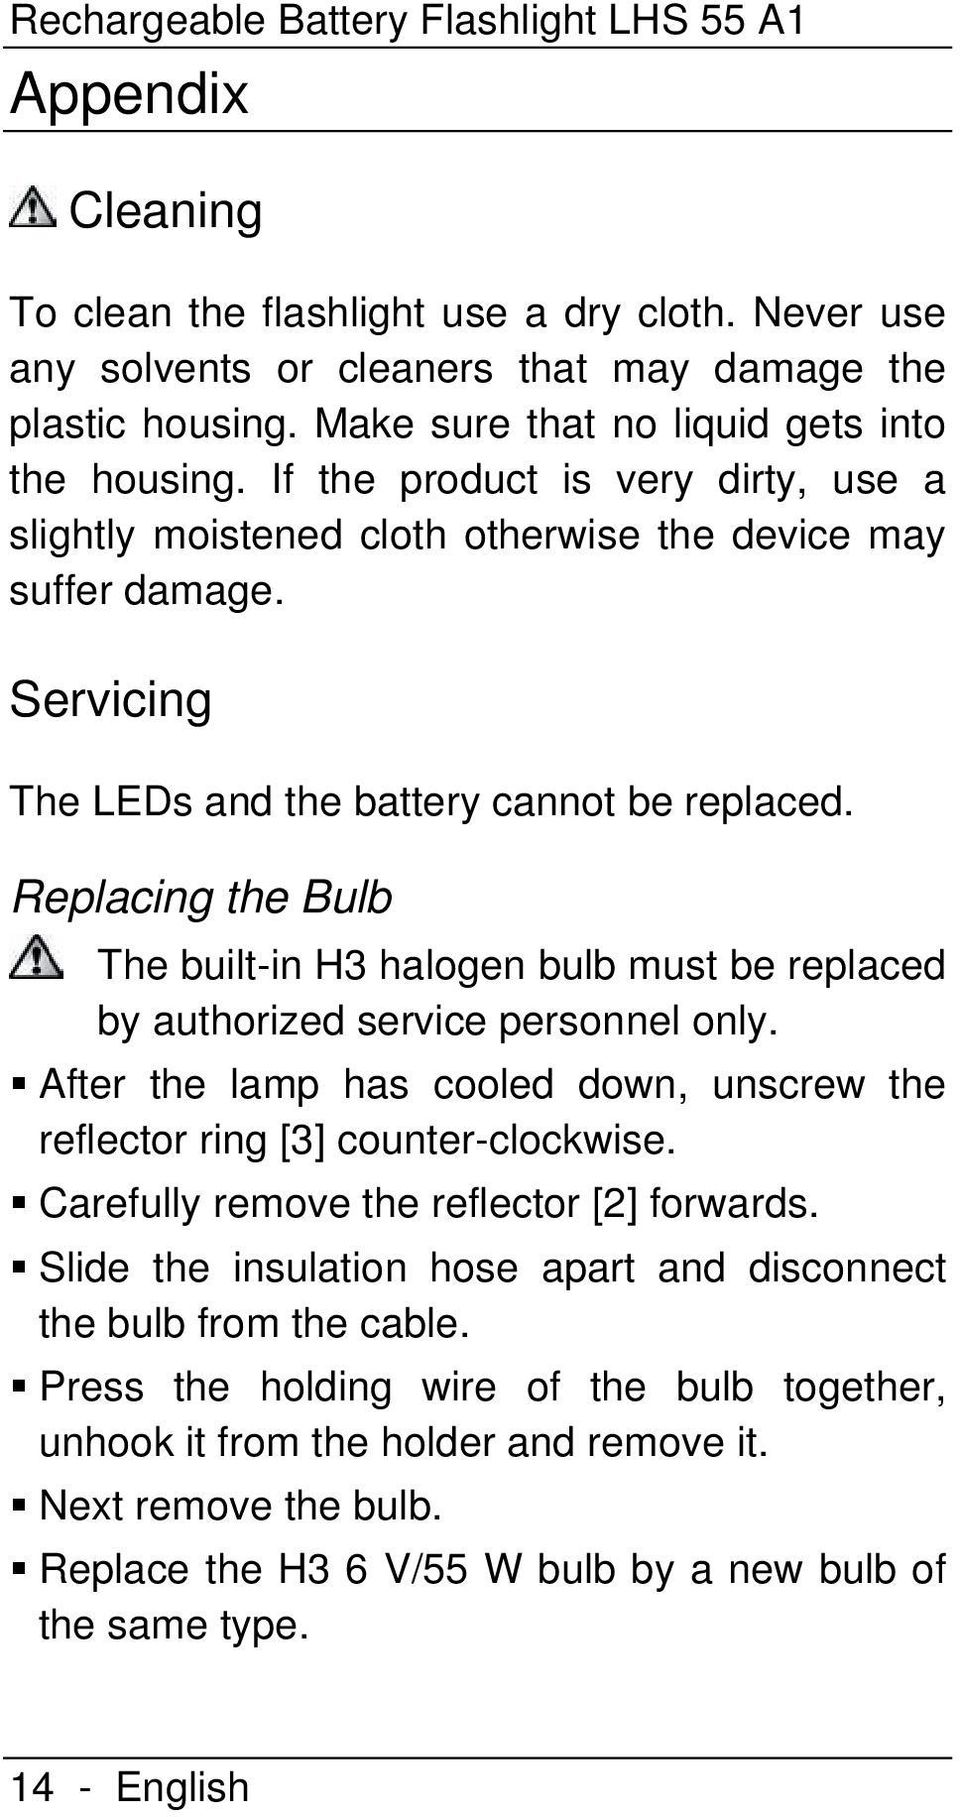 Servicing The LEDs and the battery cannot be replaced. Replacing the Bulb The built-in H3 halogen bulb must be replaced by authorized service personnel only.